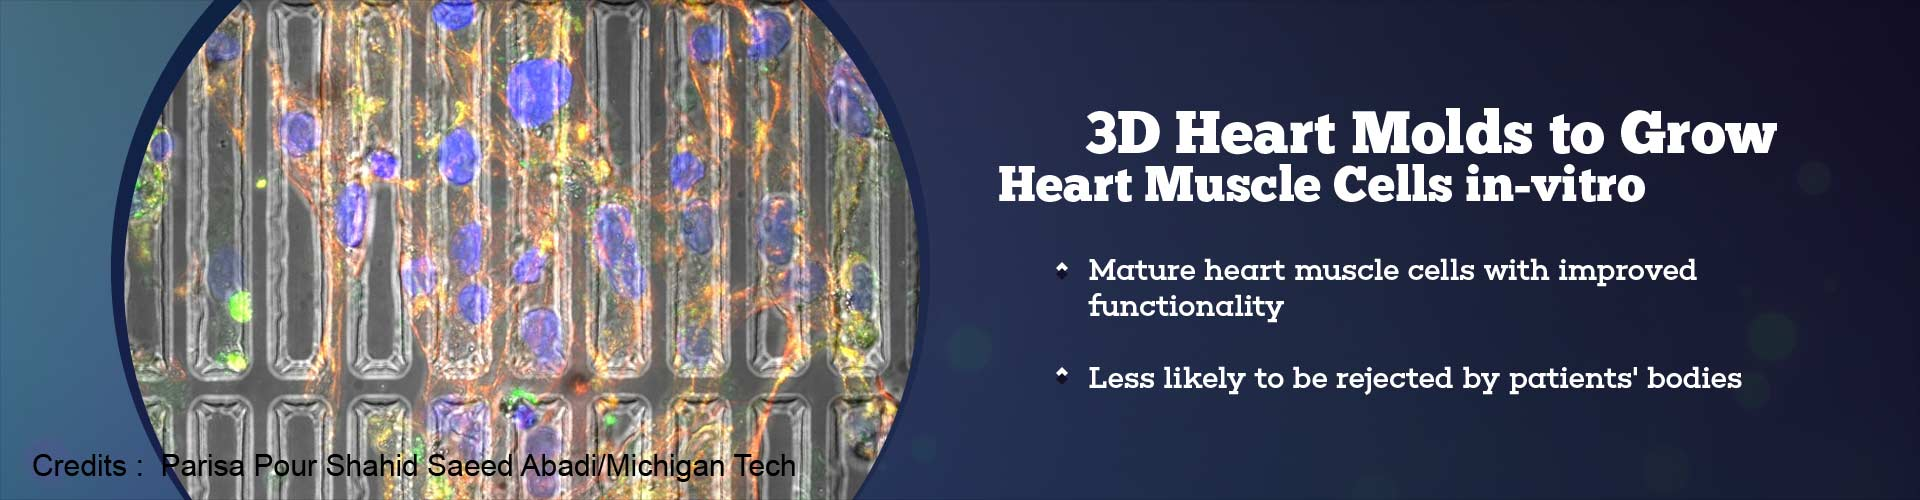 3D Heart Molds to Grow Heart Muscle Cells In-vitro